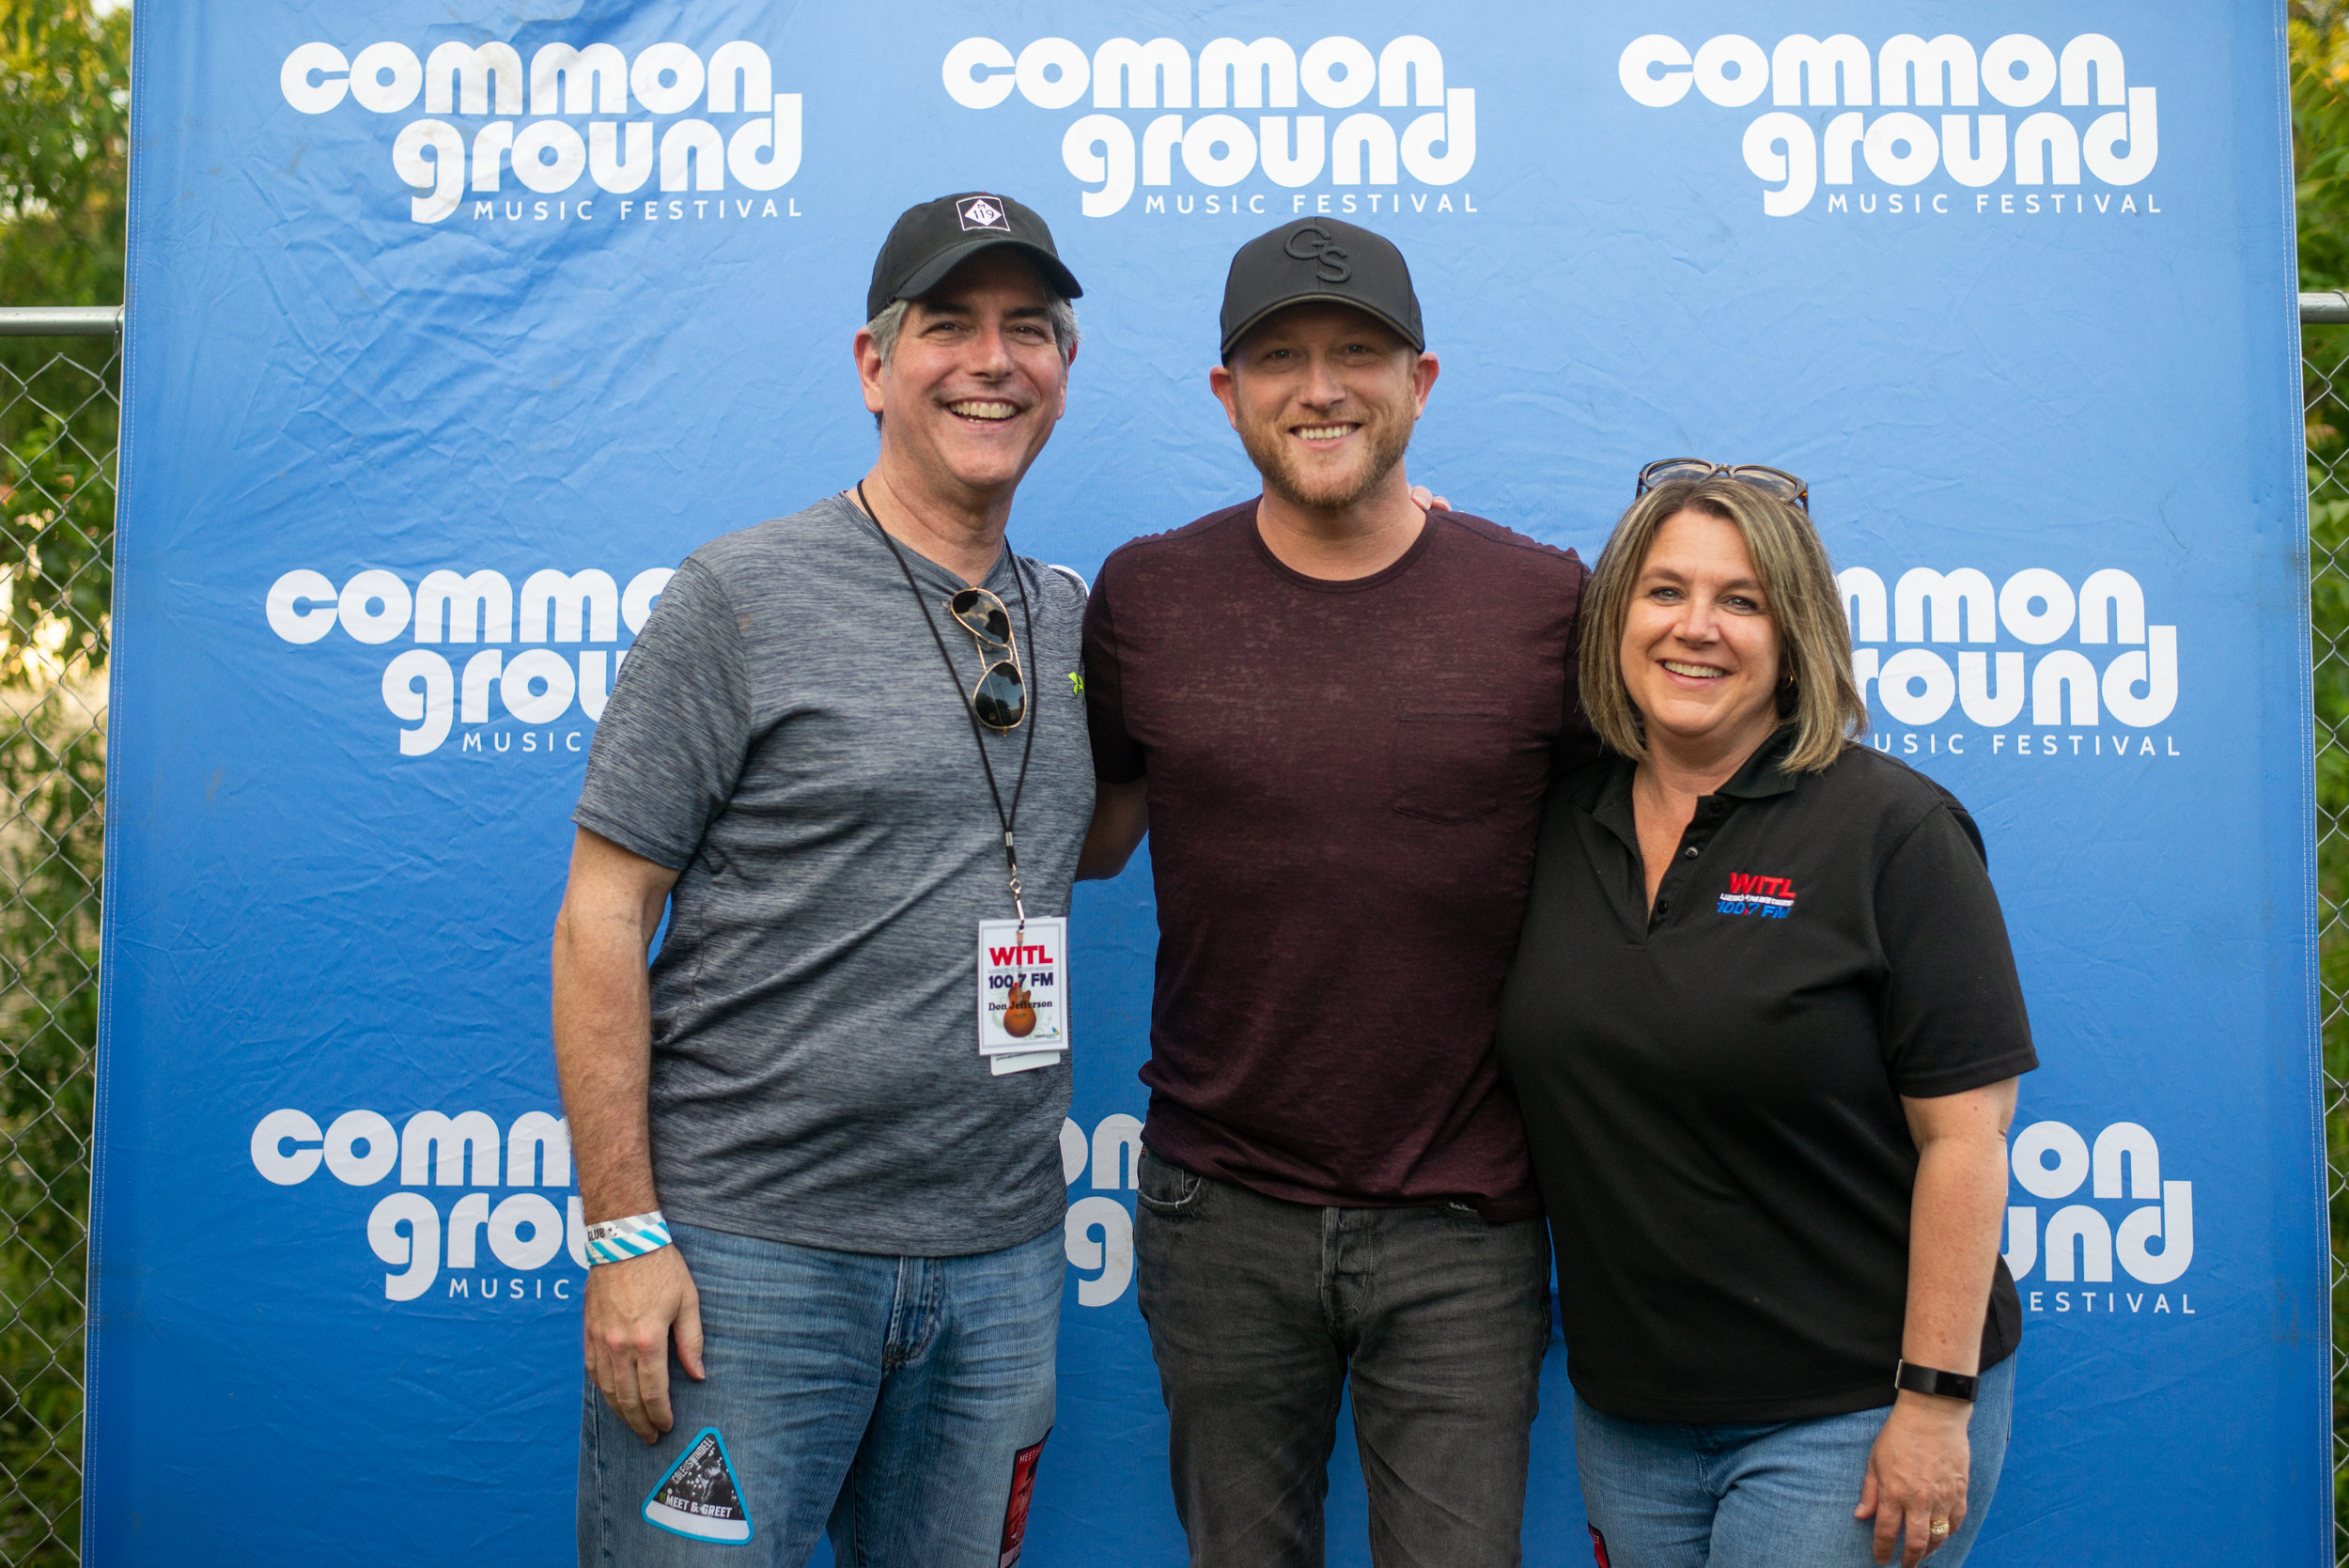 Claire Abendroth_Meet&Greet_ColeSwindell-14.jpg